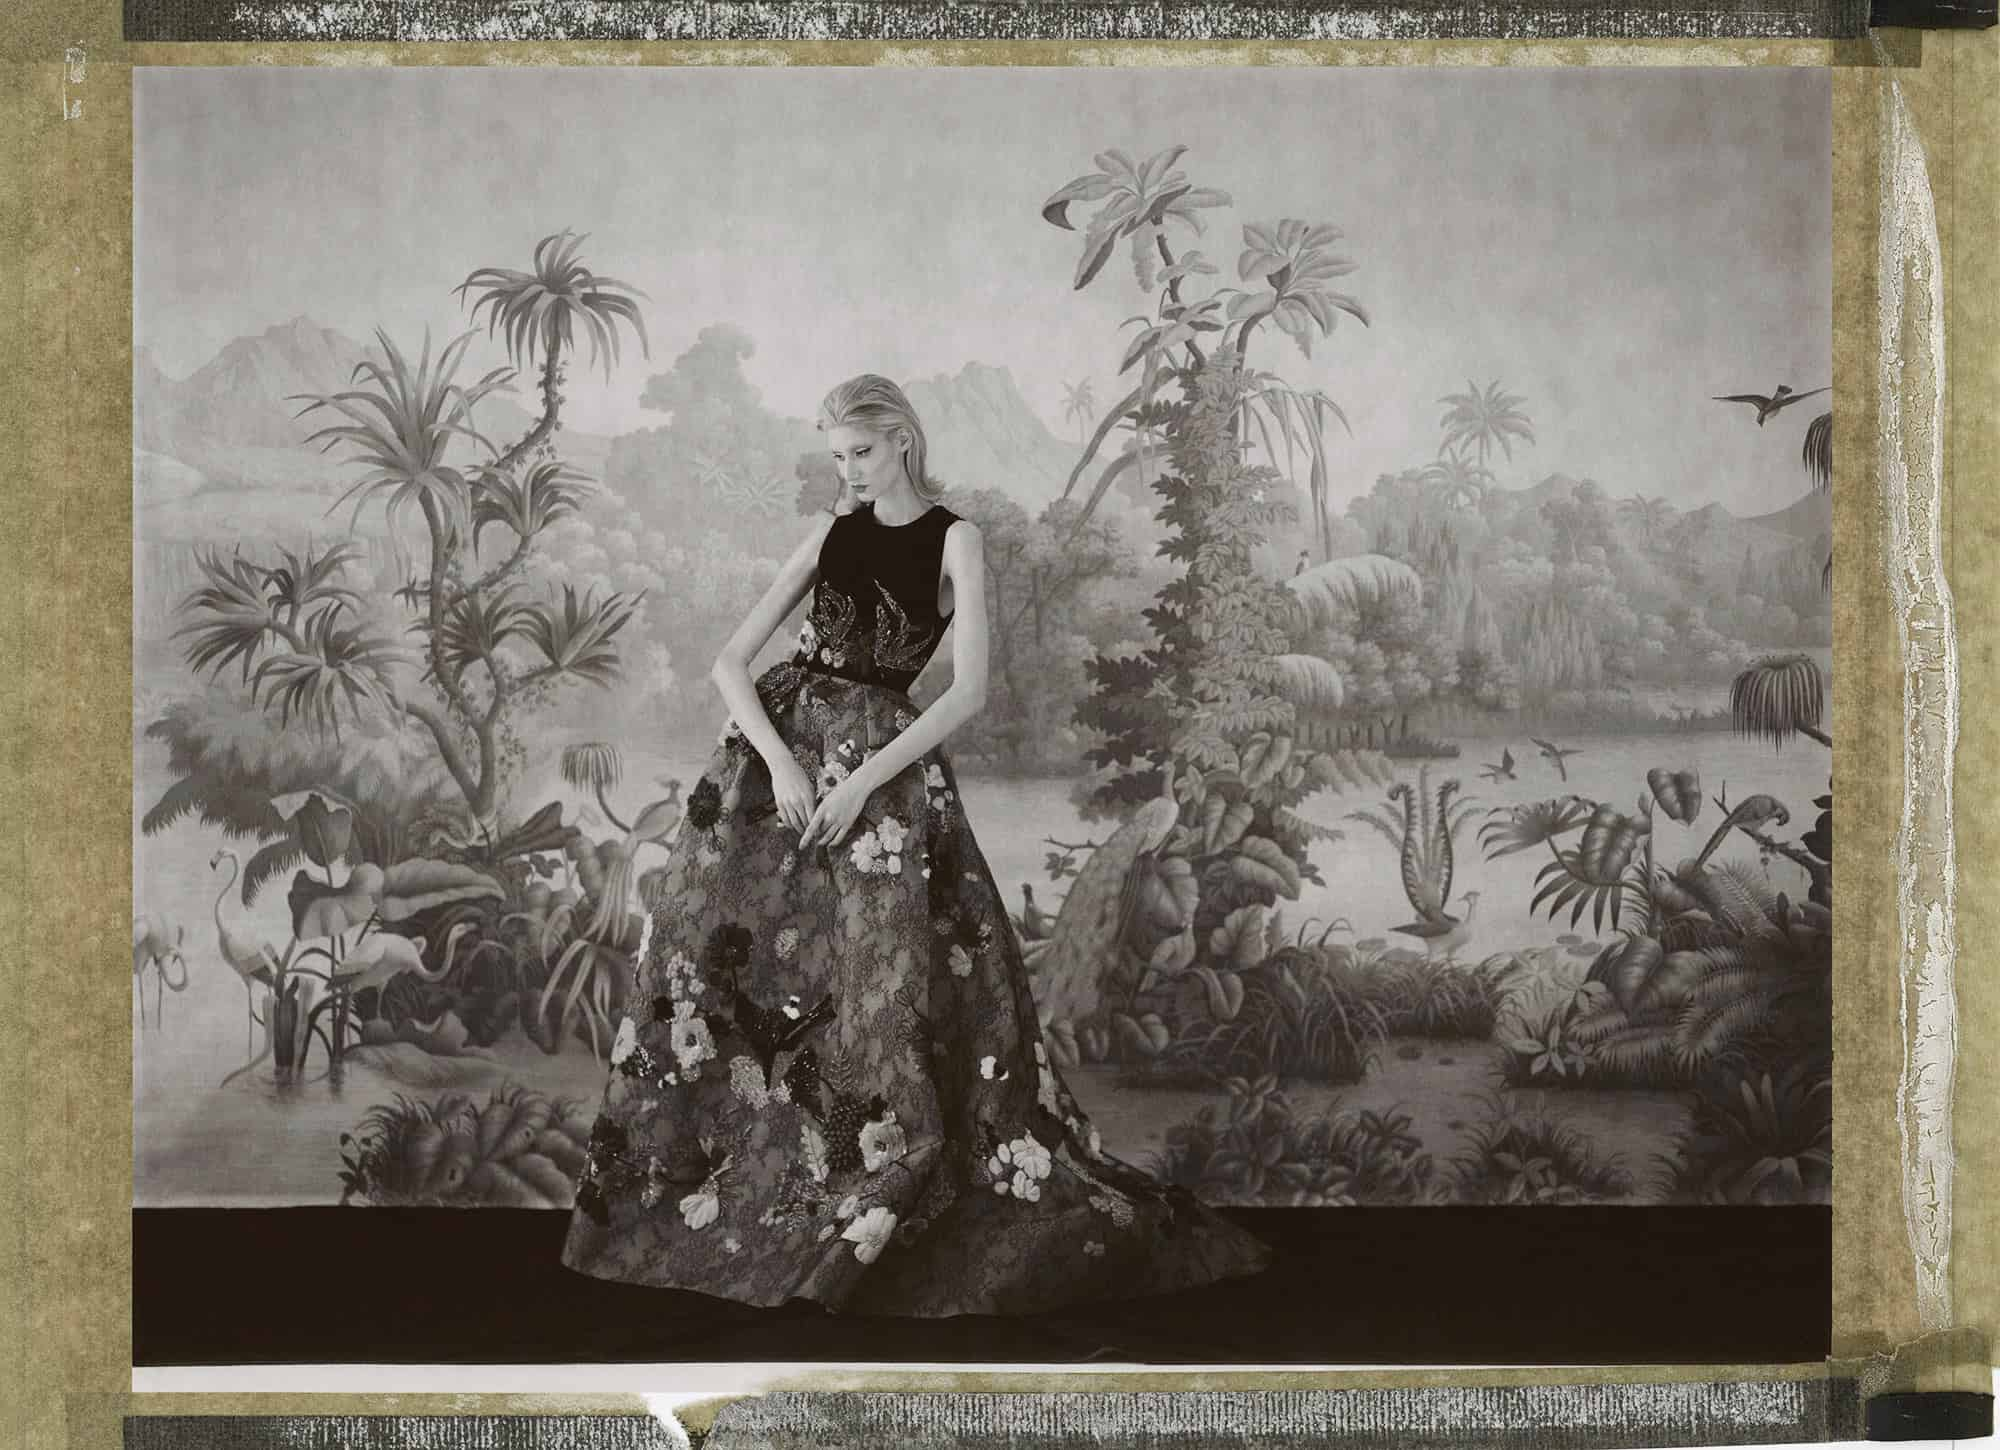 Fine art b/w photography of fashion model wearing haute couture by Elie Saab, in front of a painted wallpaper depicting jungle in Brazil. Wallpaper by de Gournay.